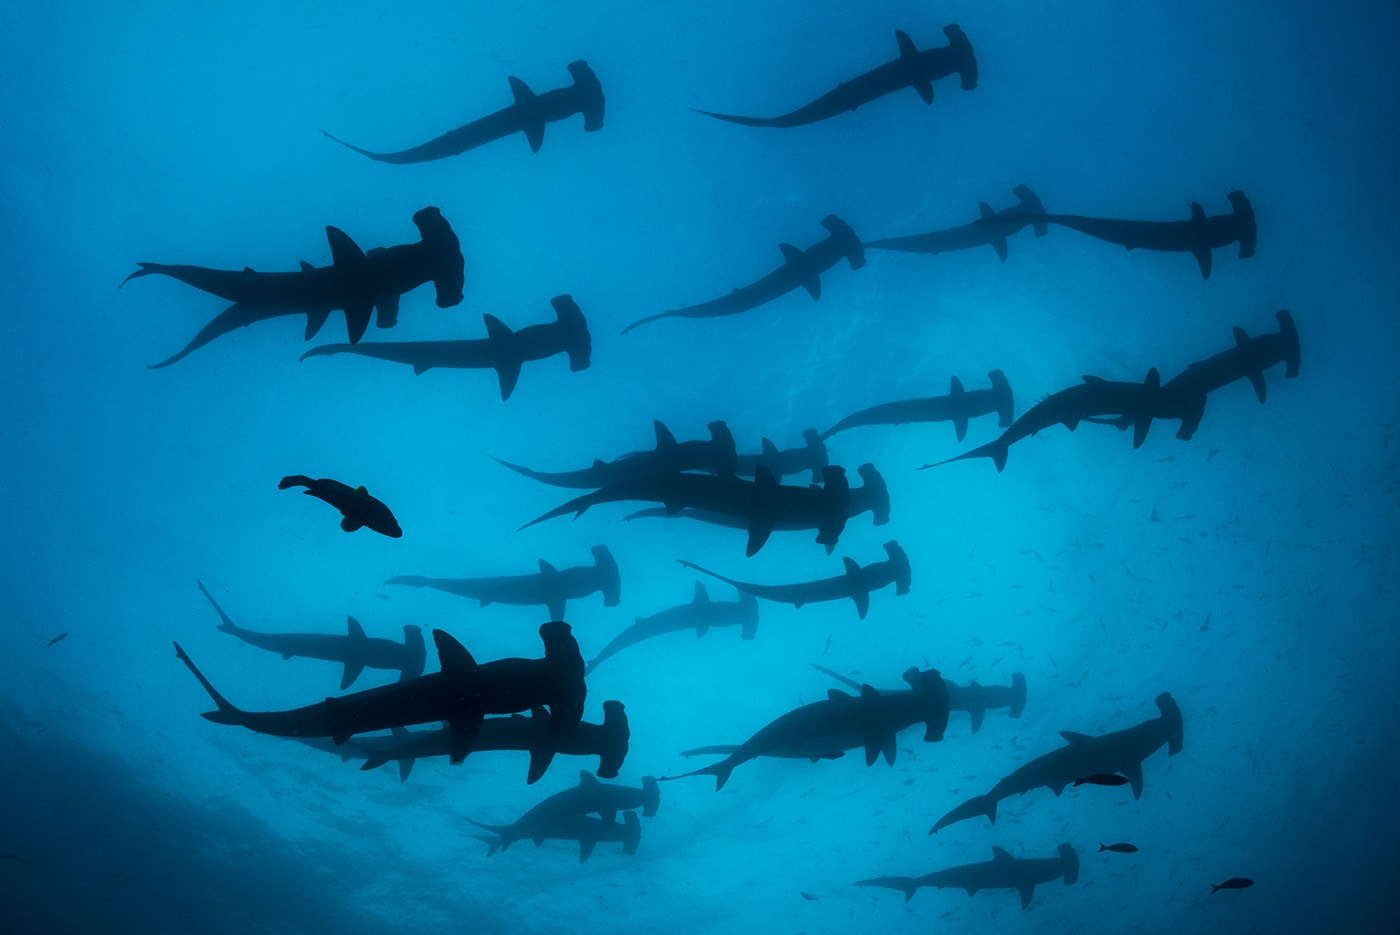 The Galapagos Islands are one of the few places in the world where divers can encounter large schools of scalloped hammerhead sharks.